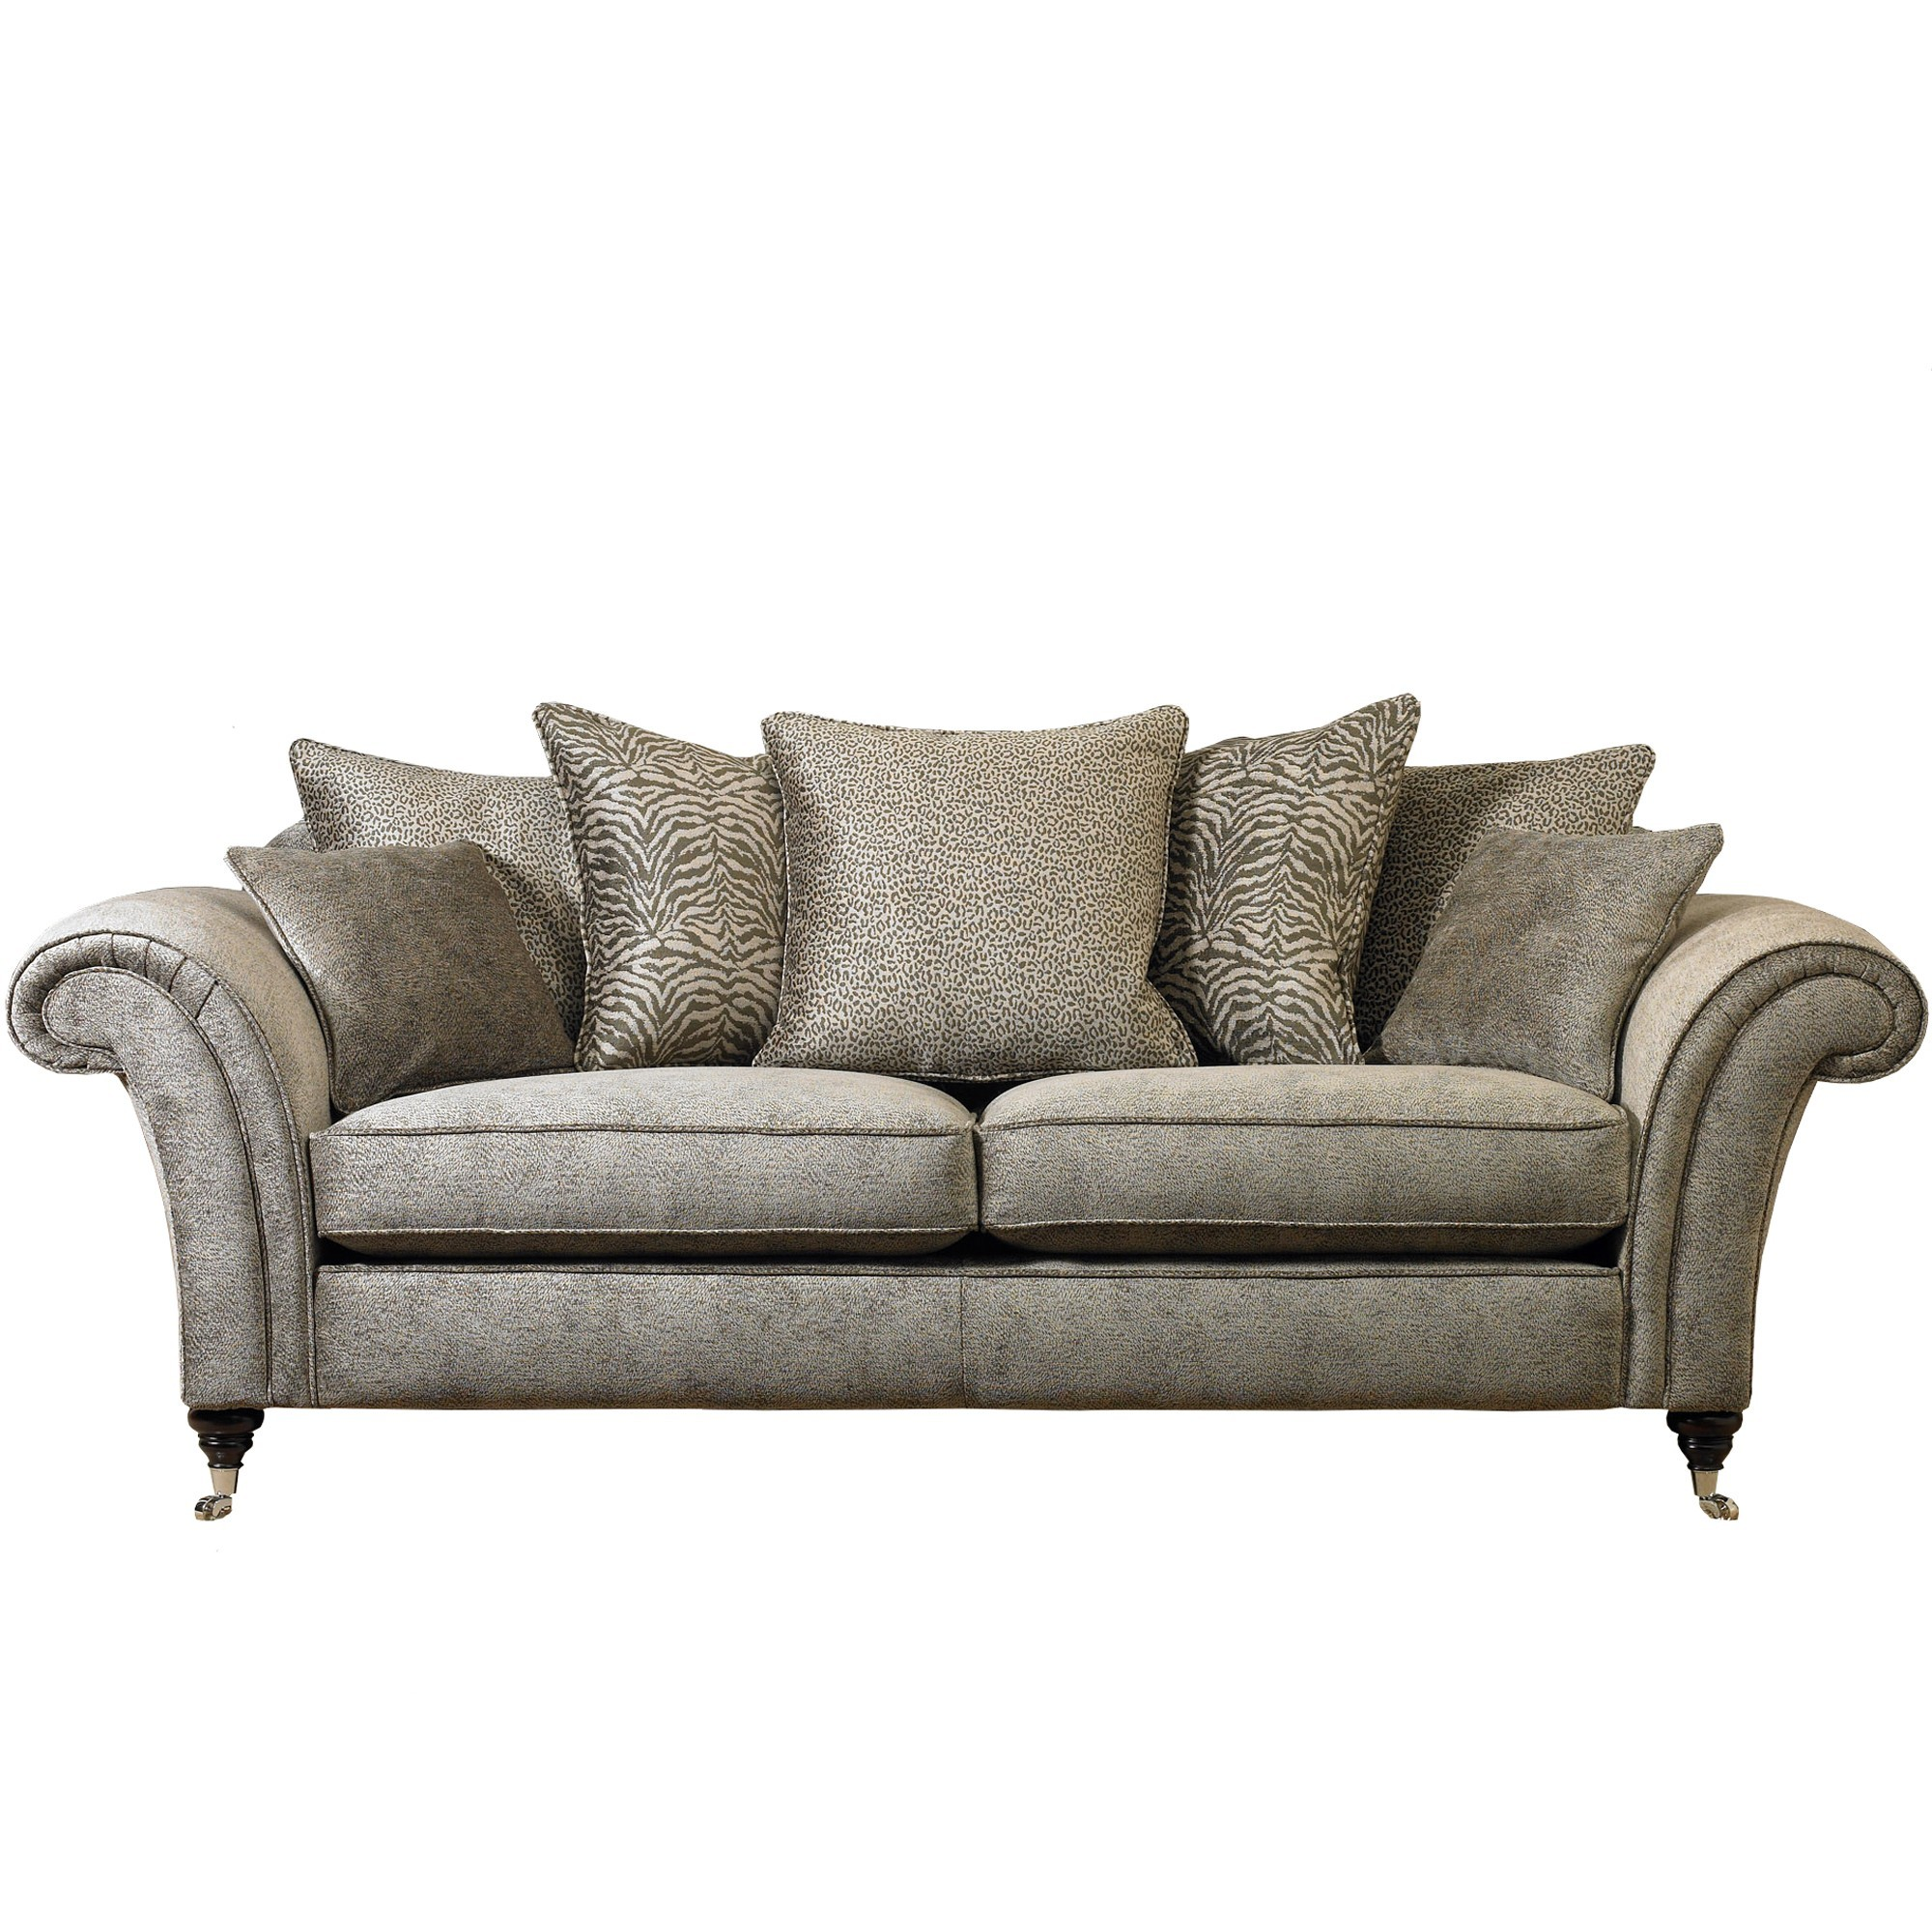 Wade Upholstery Jasper Large Sofa Scatter Back All Sofas Cookes Furniture